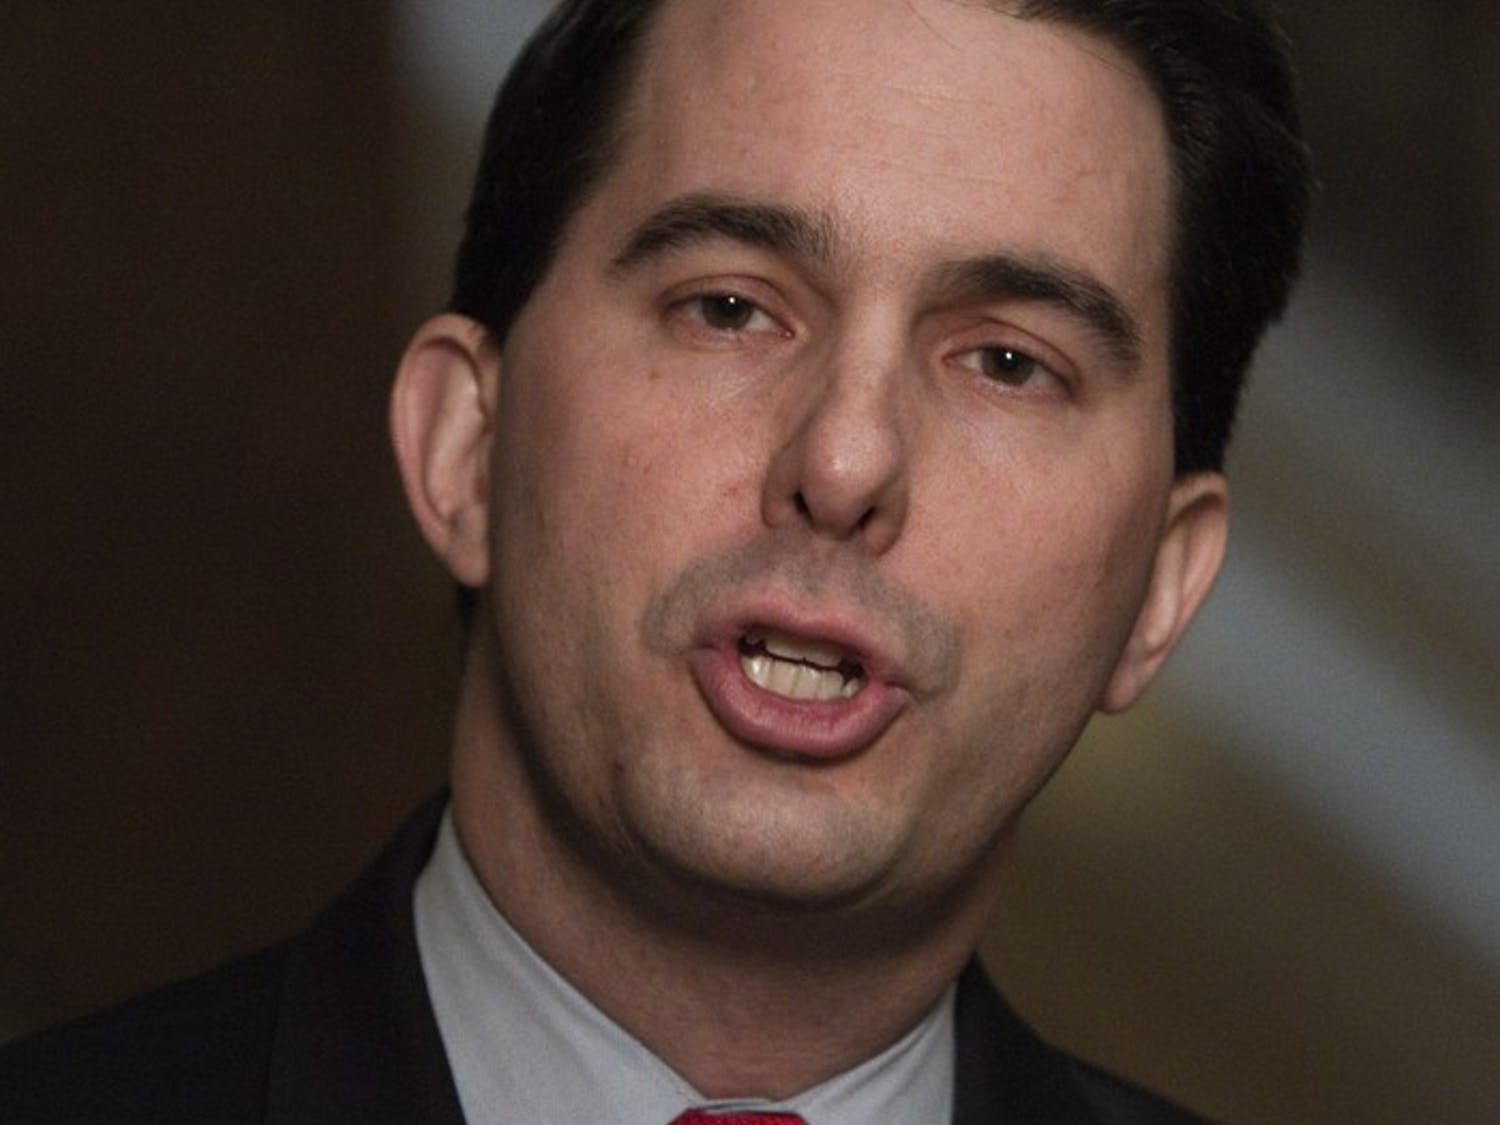 Letter to the Editor: Walker has strong support for students across campuses